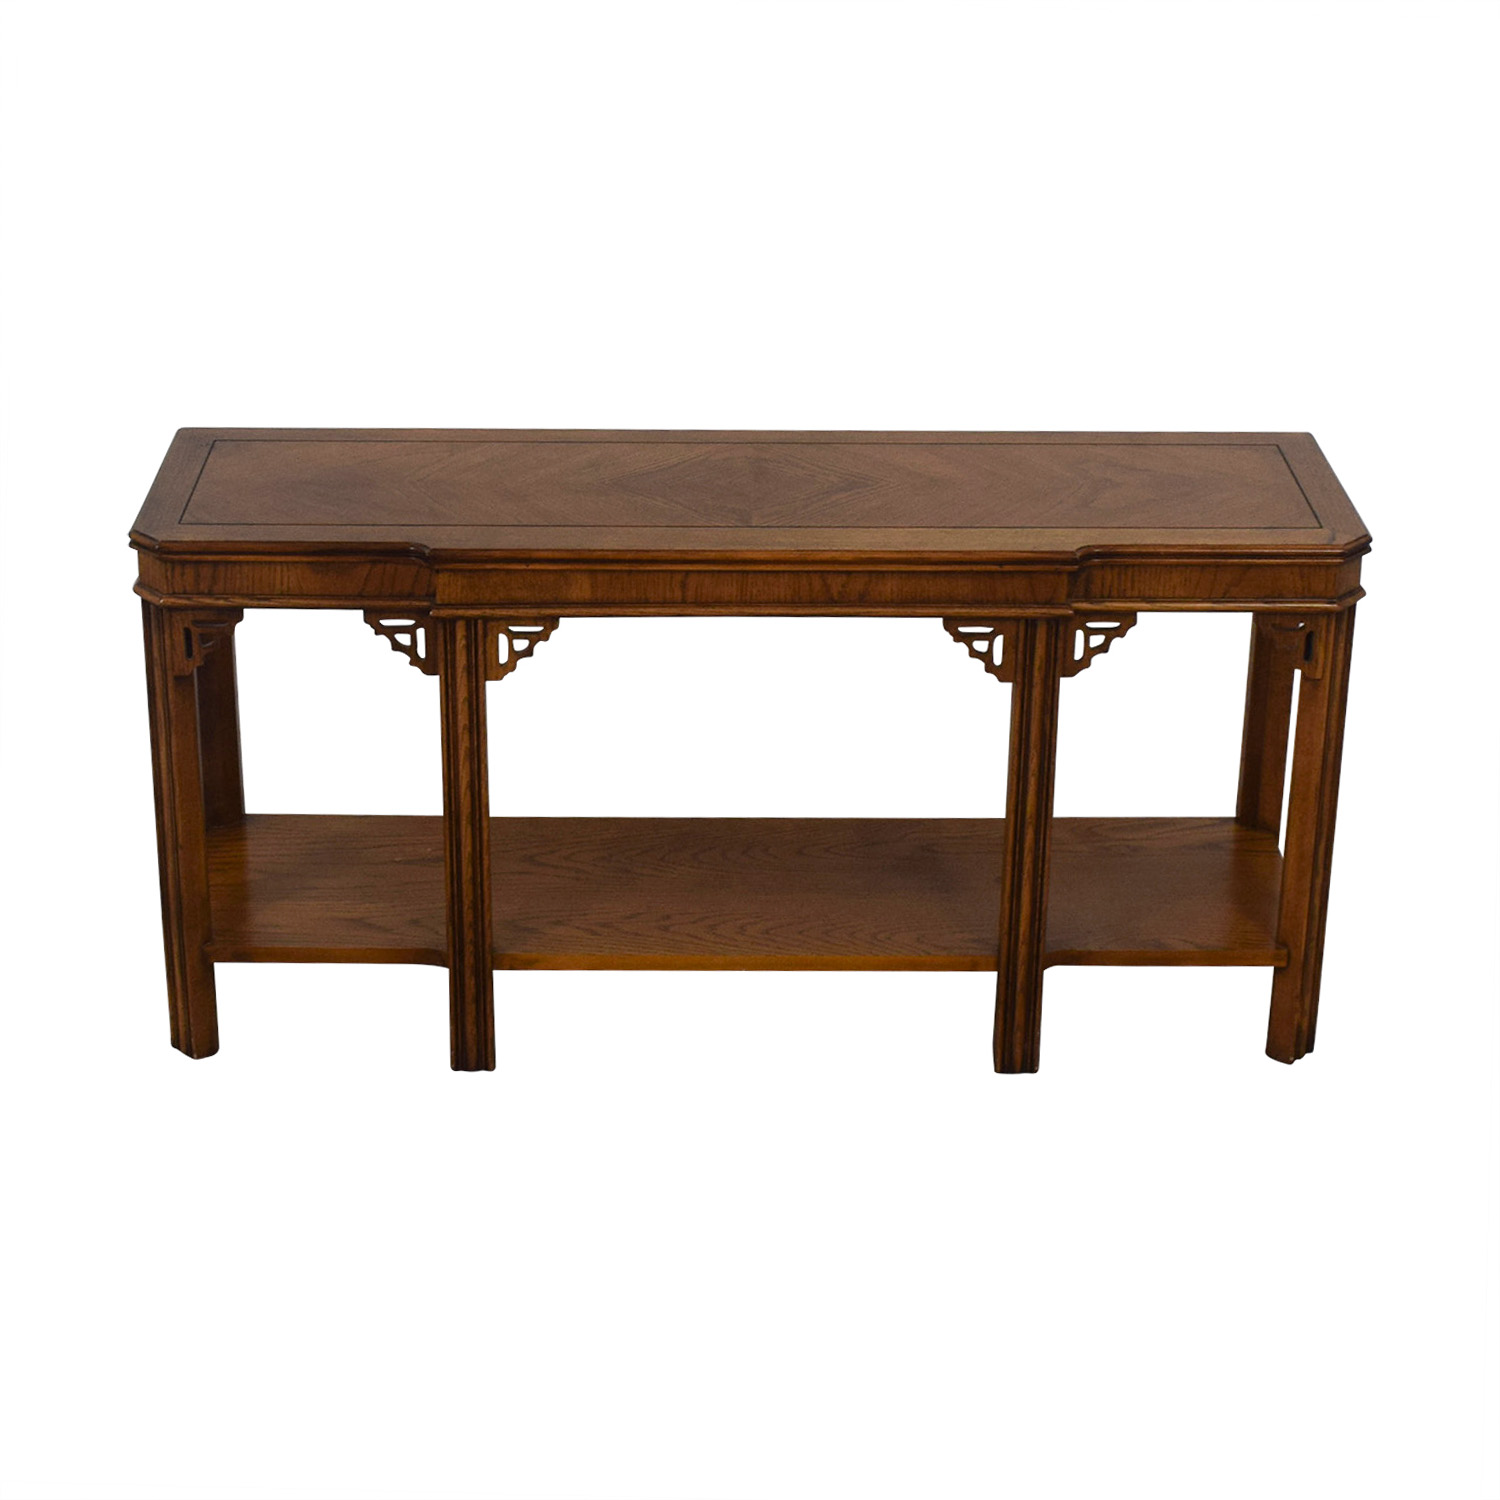 buy Lane Furniture Lane Furniture Decorative Console online